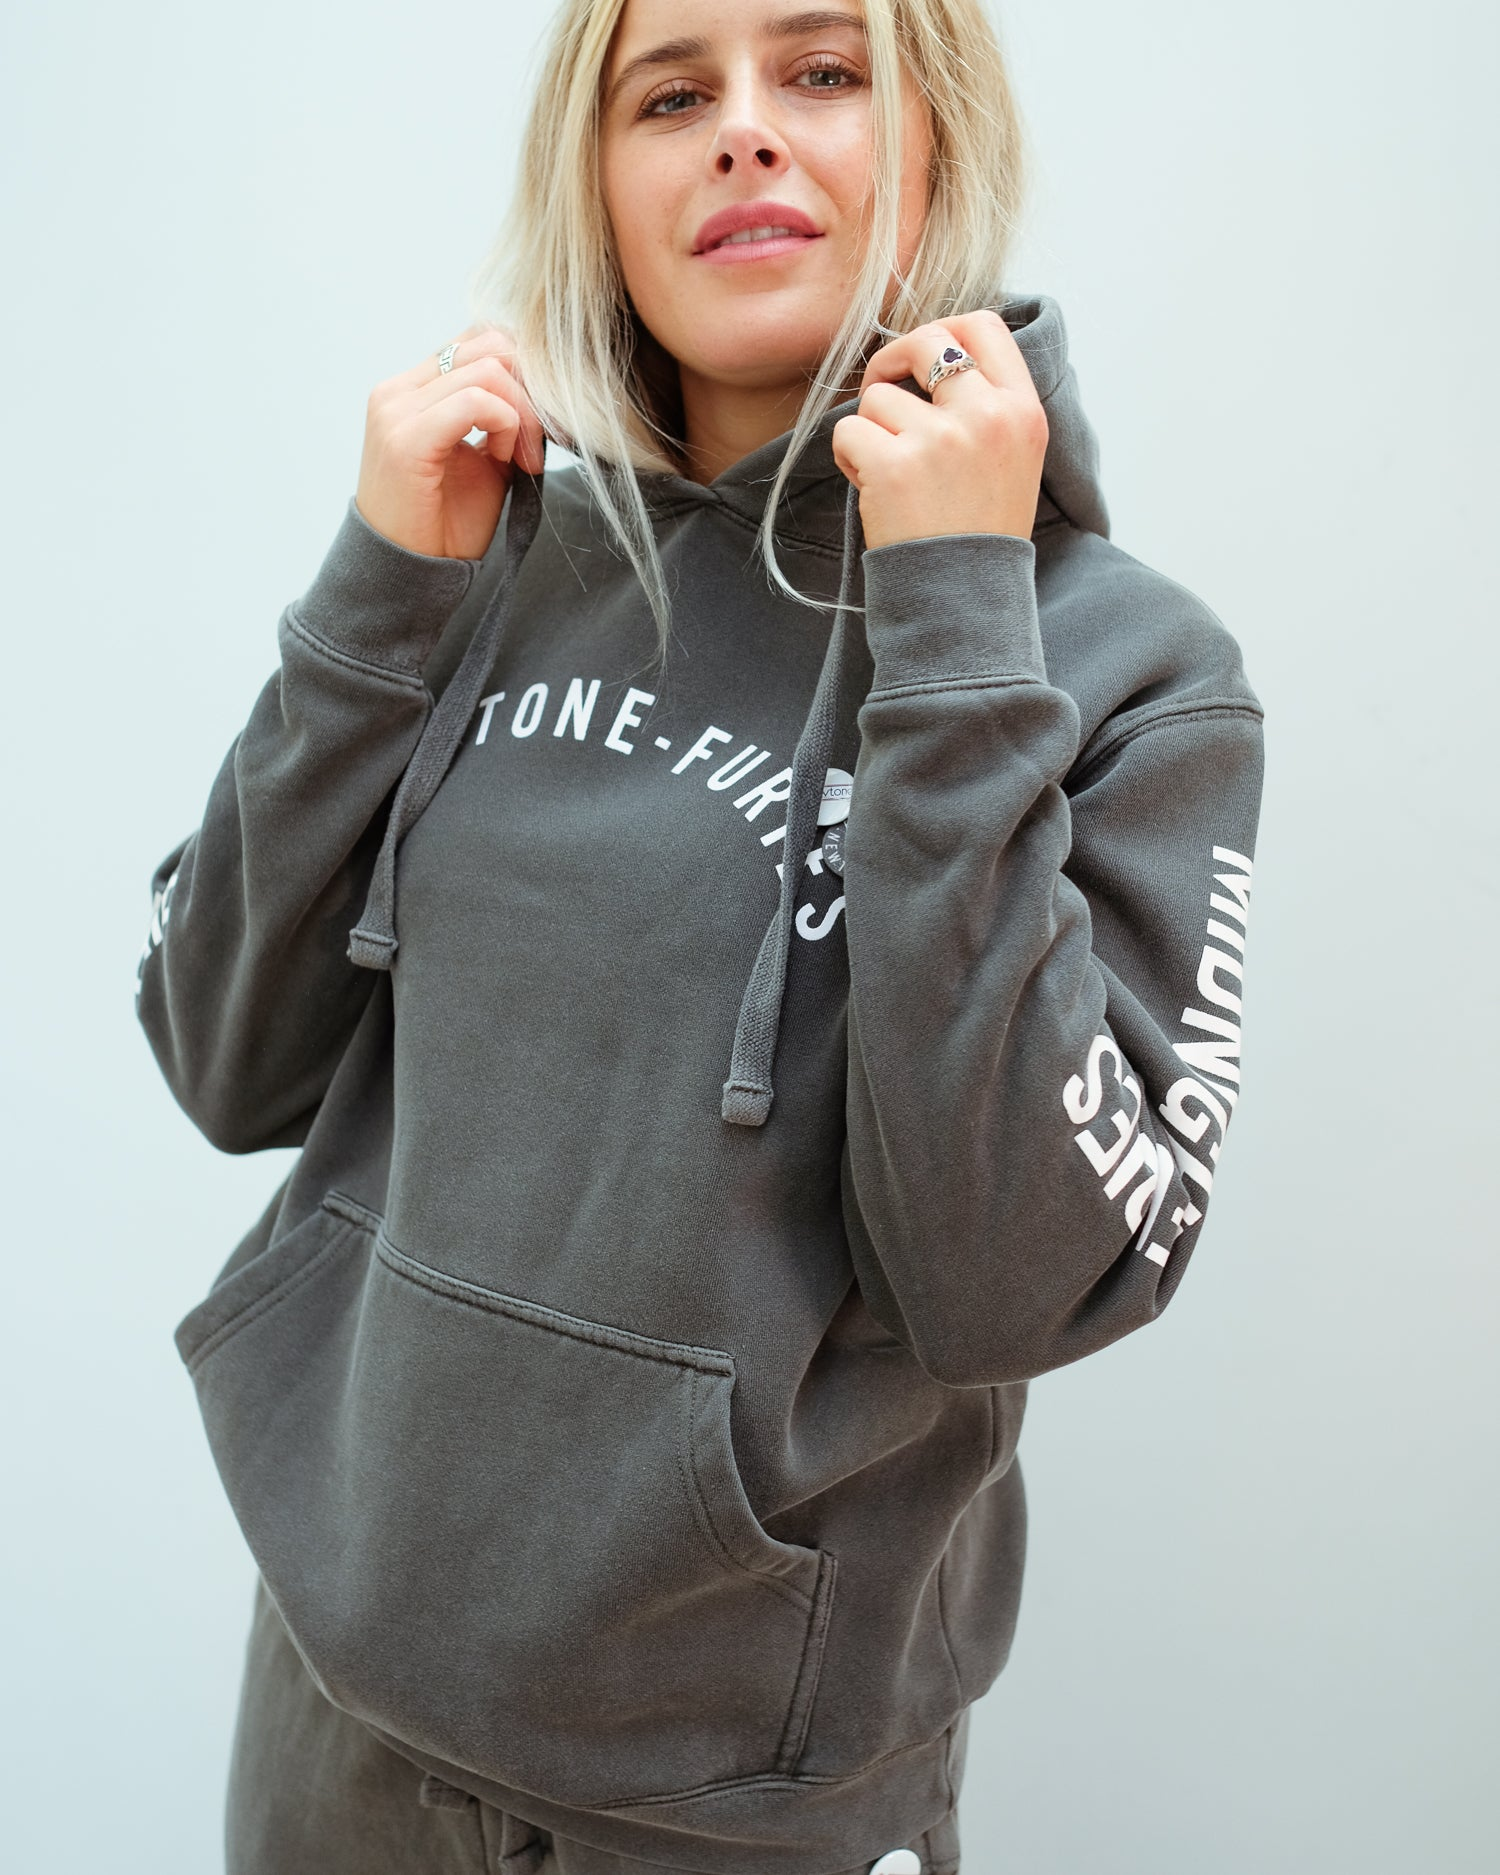 NT Furies Printed Hoodie in Pepper